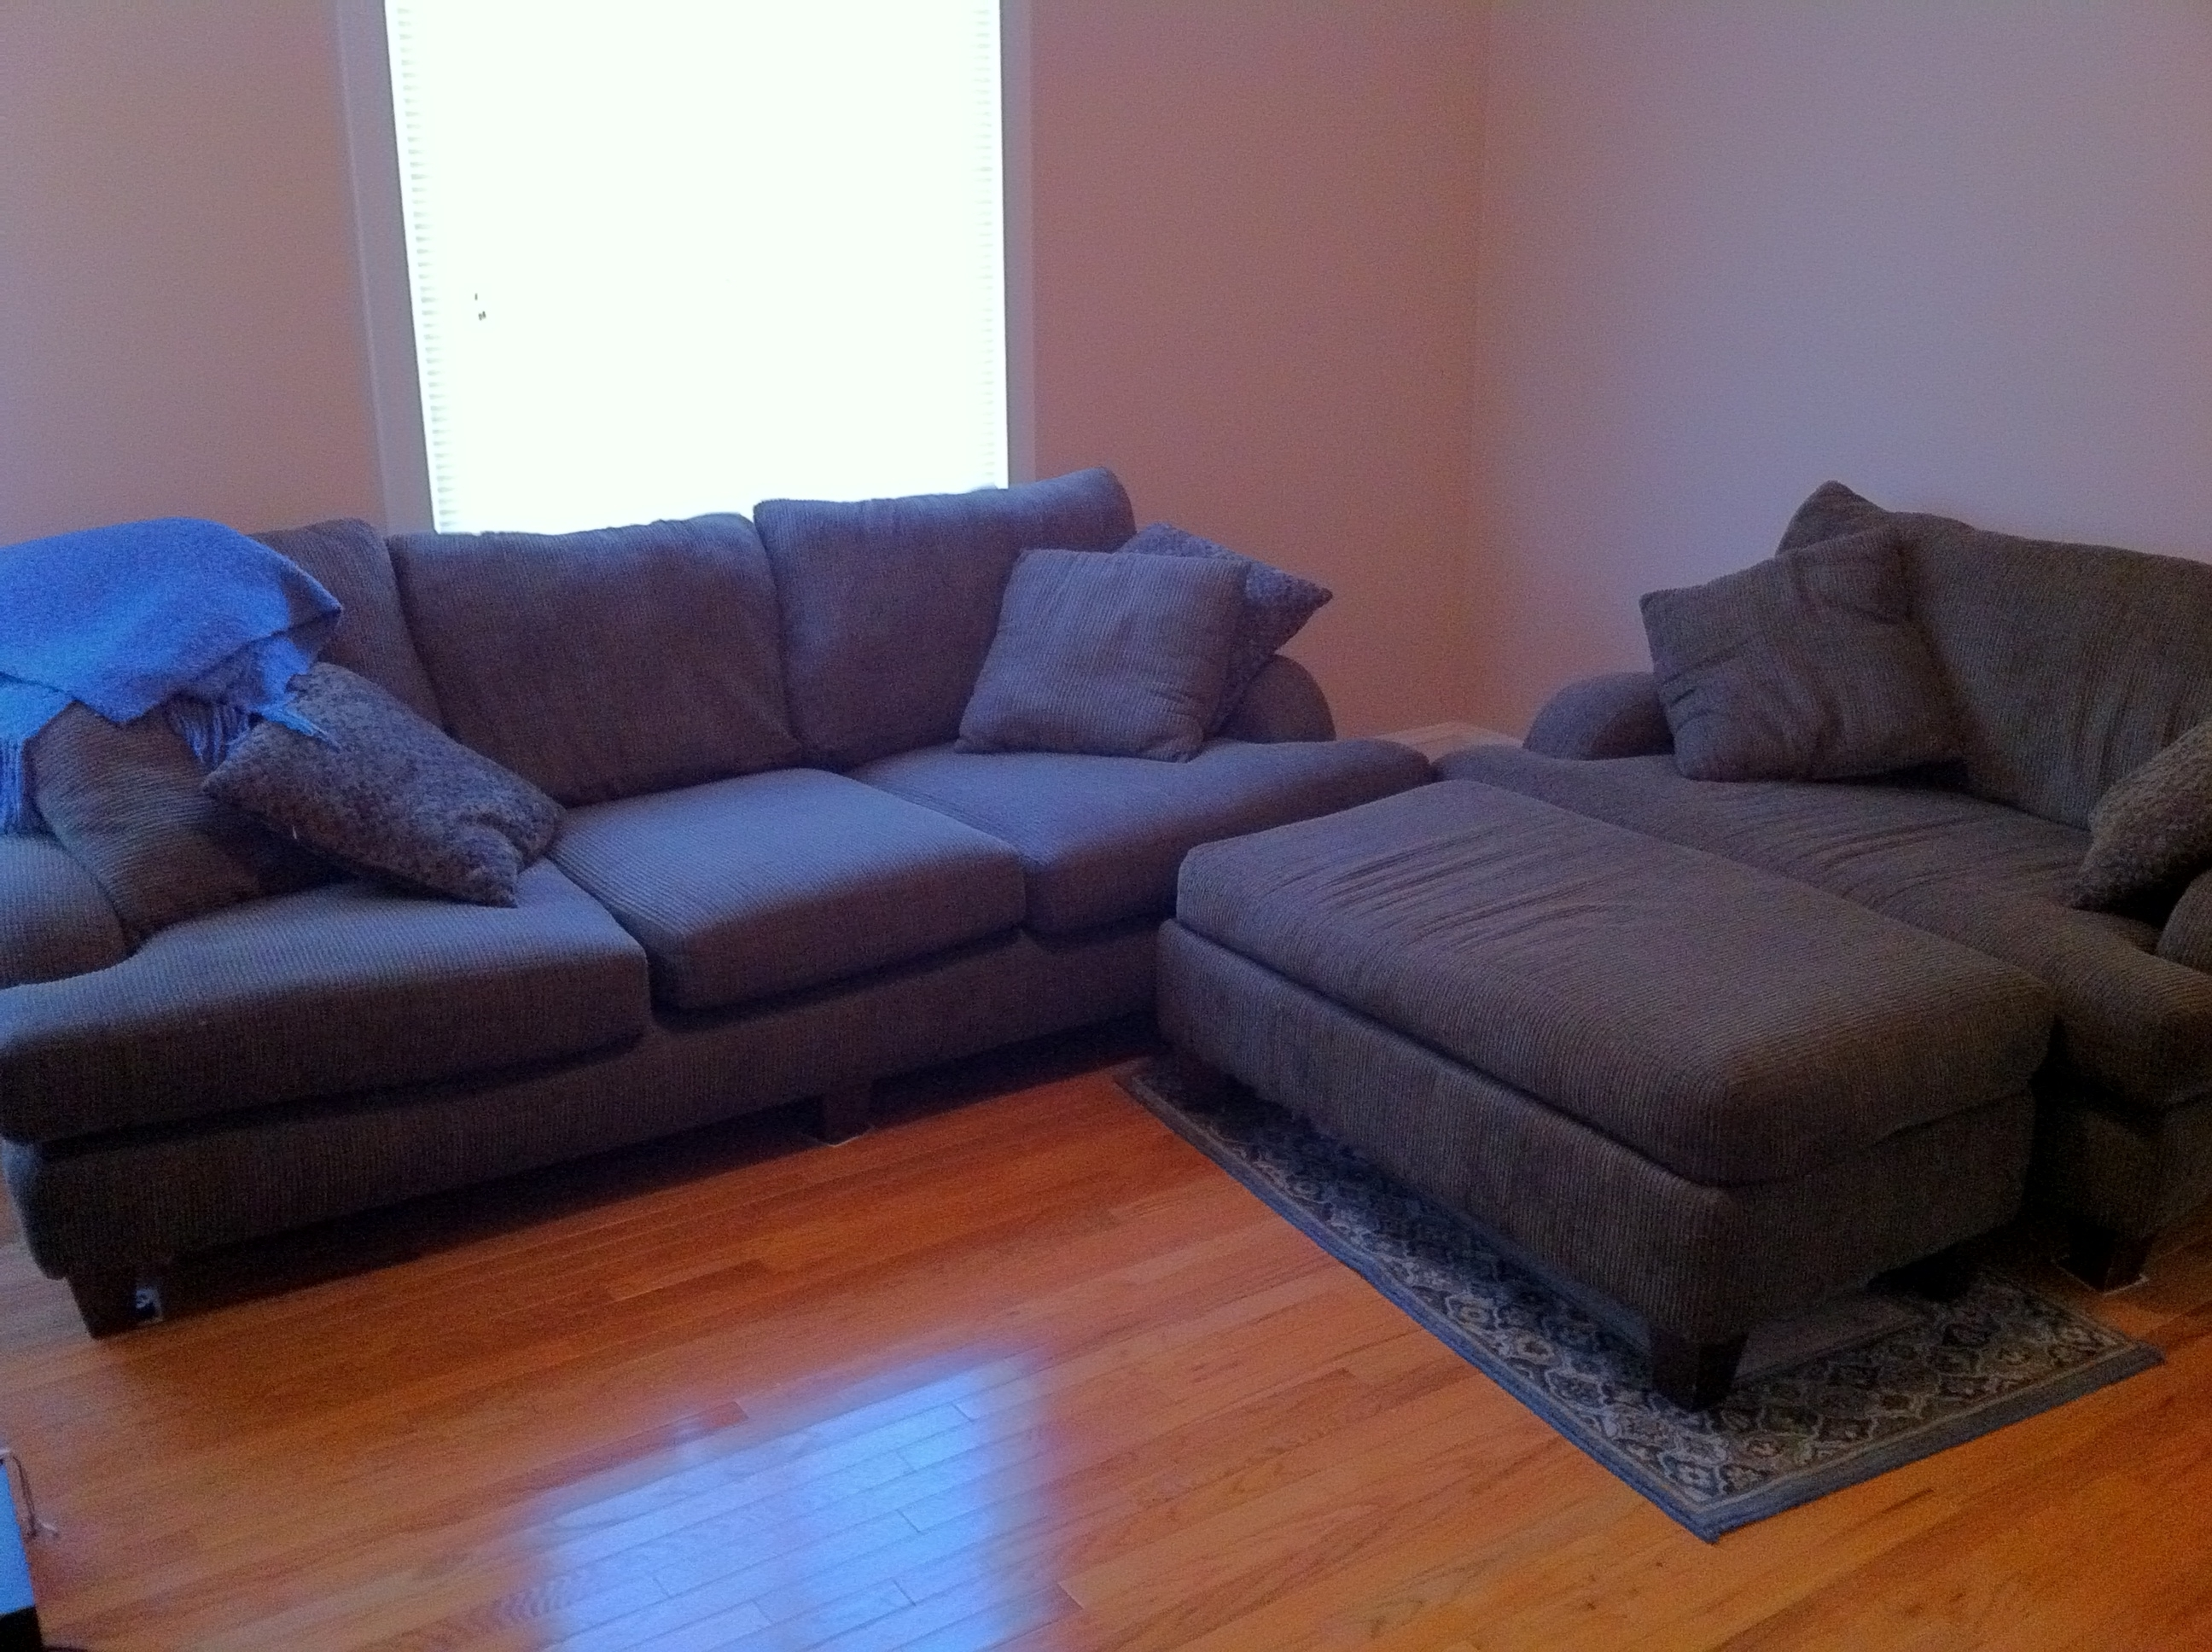 Sectional Sofas At Craigslist With Widely Used Stylish Sectional Sofas On Craigslist – Mediasupload (View 13 of 20)